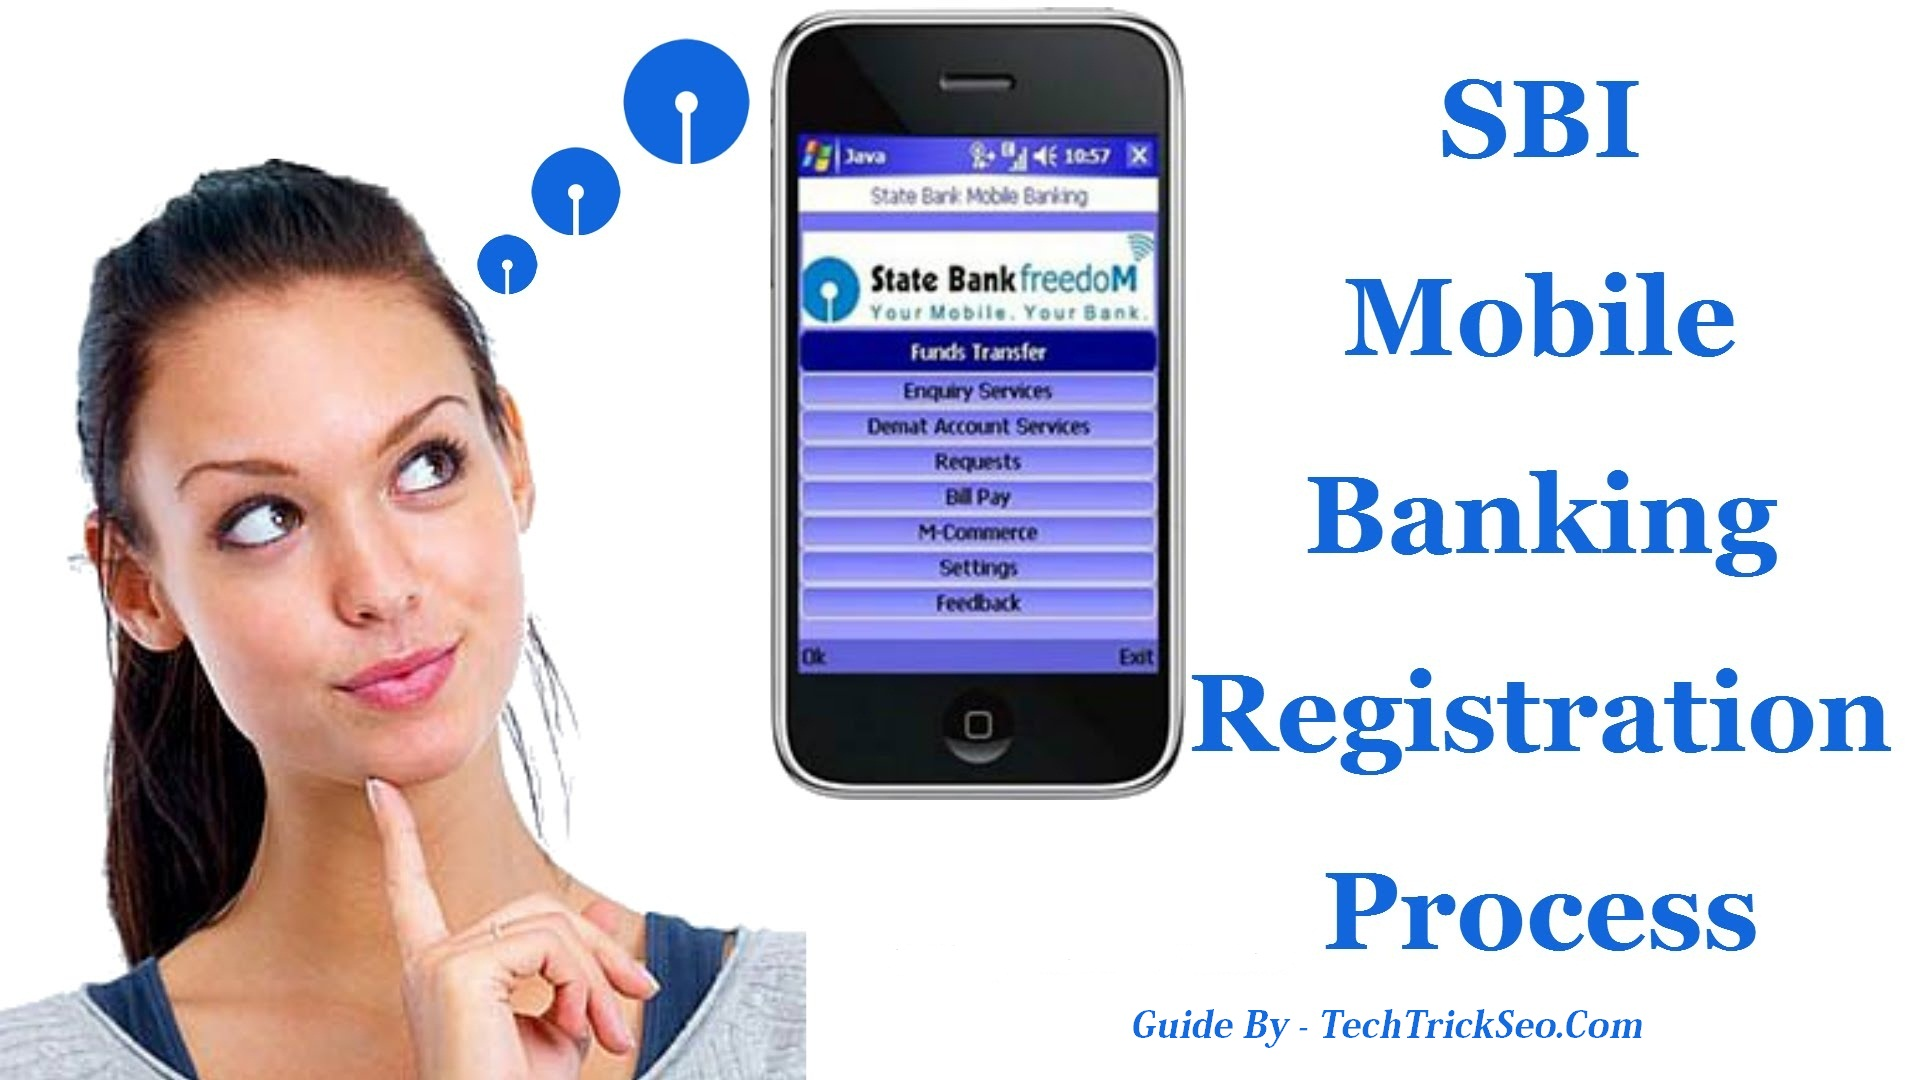 sbi mobile banking registration